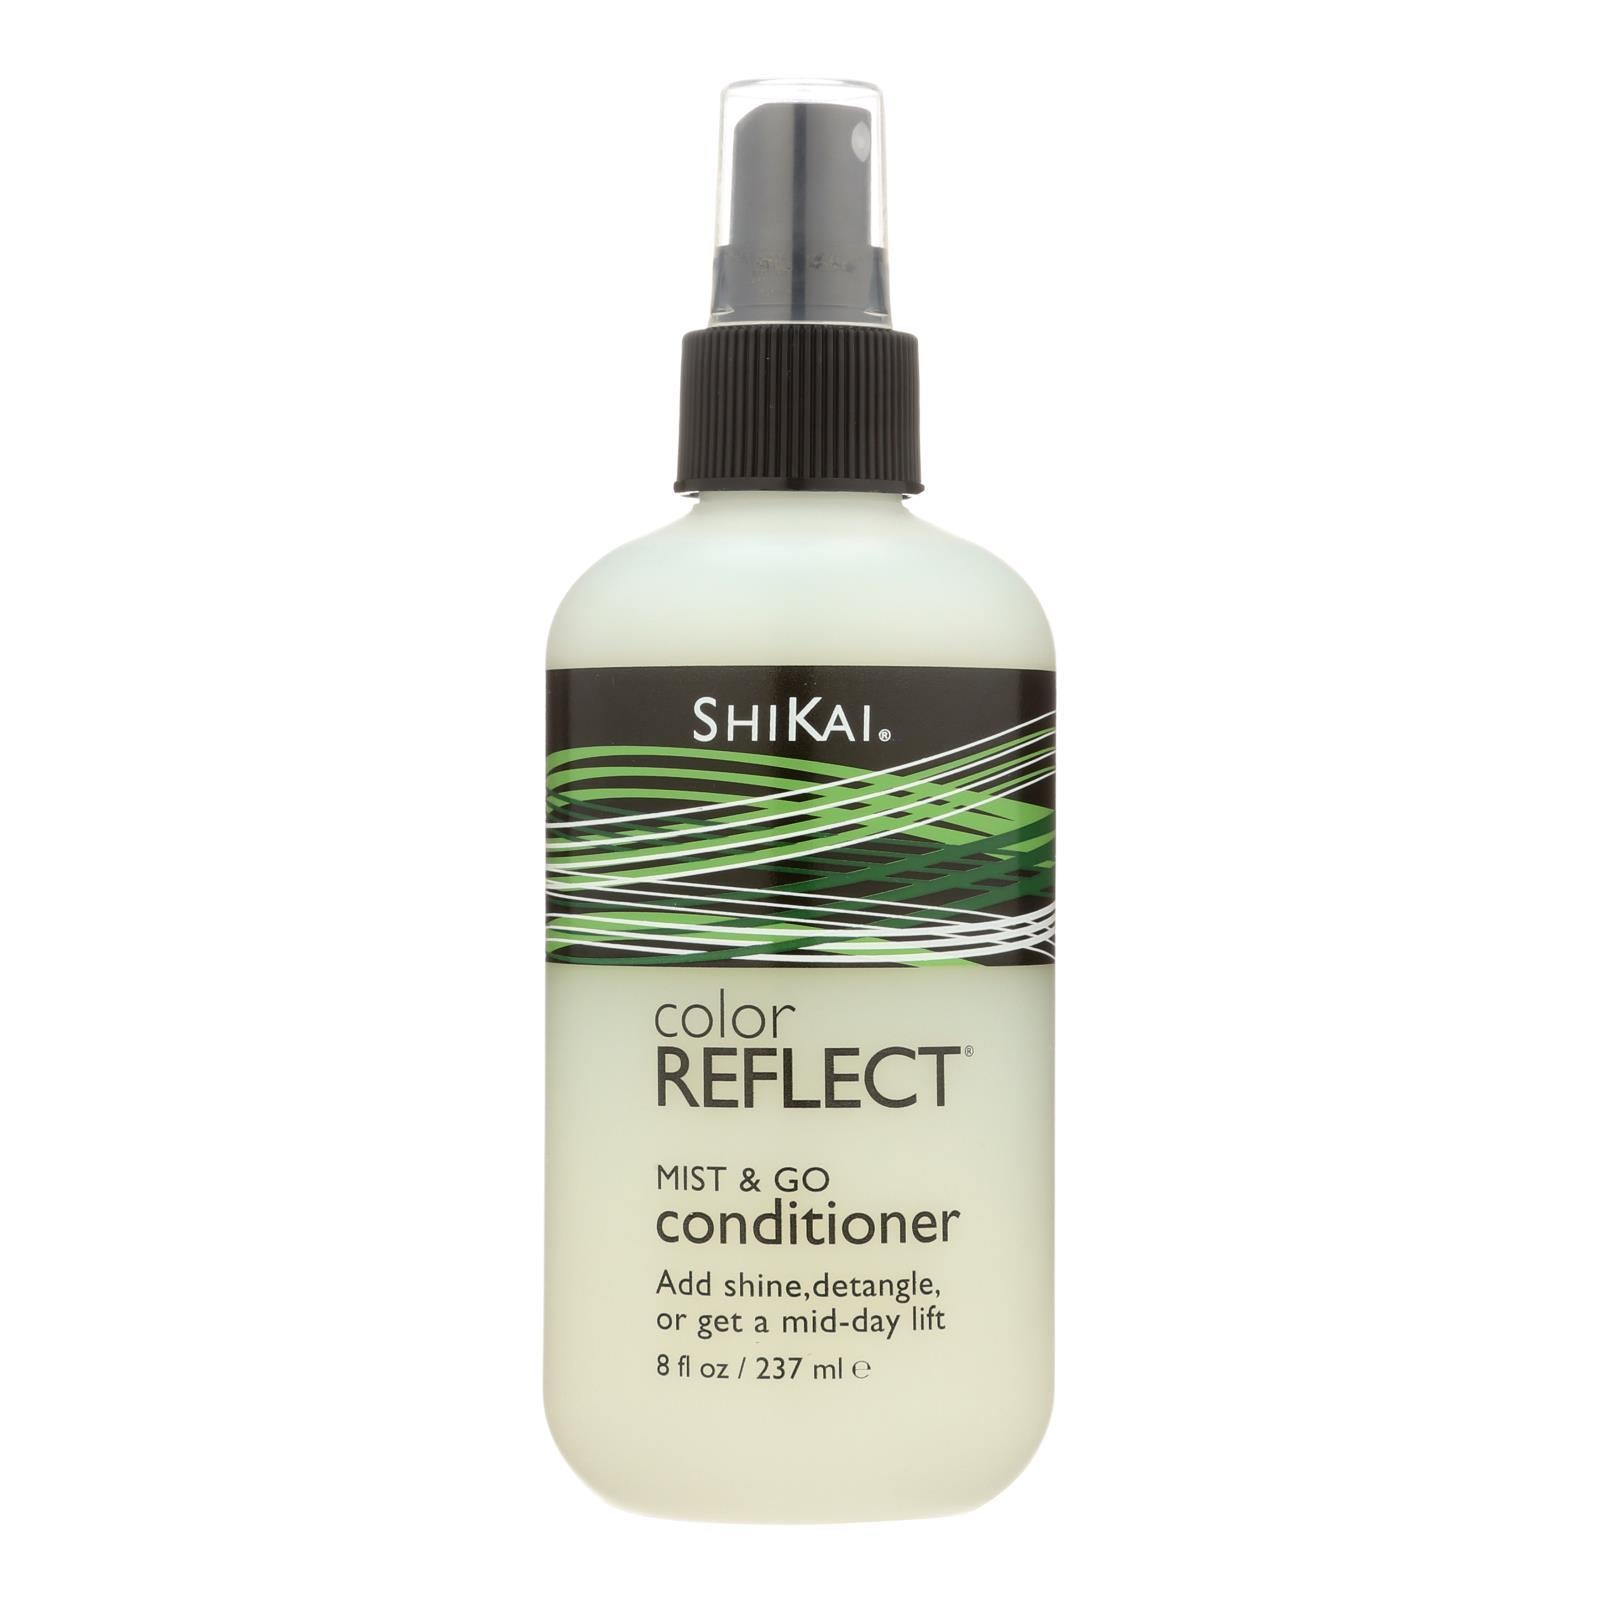 Shikai Color Reflect Mist And Go Conditioner - 8 Fl Oz - BeeGreen